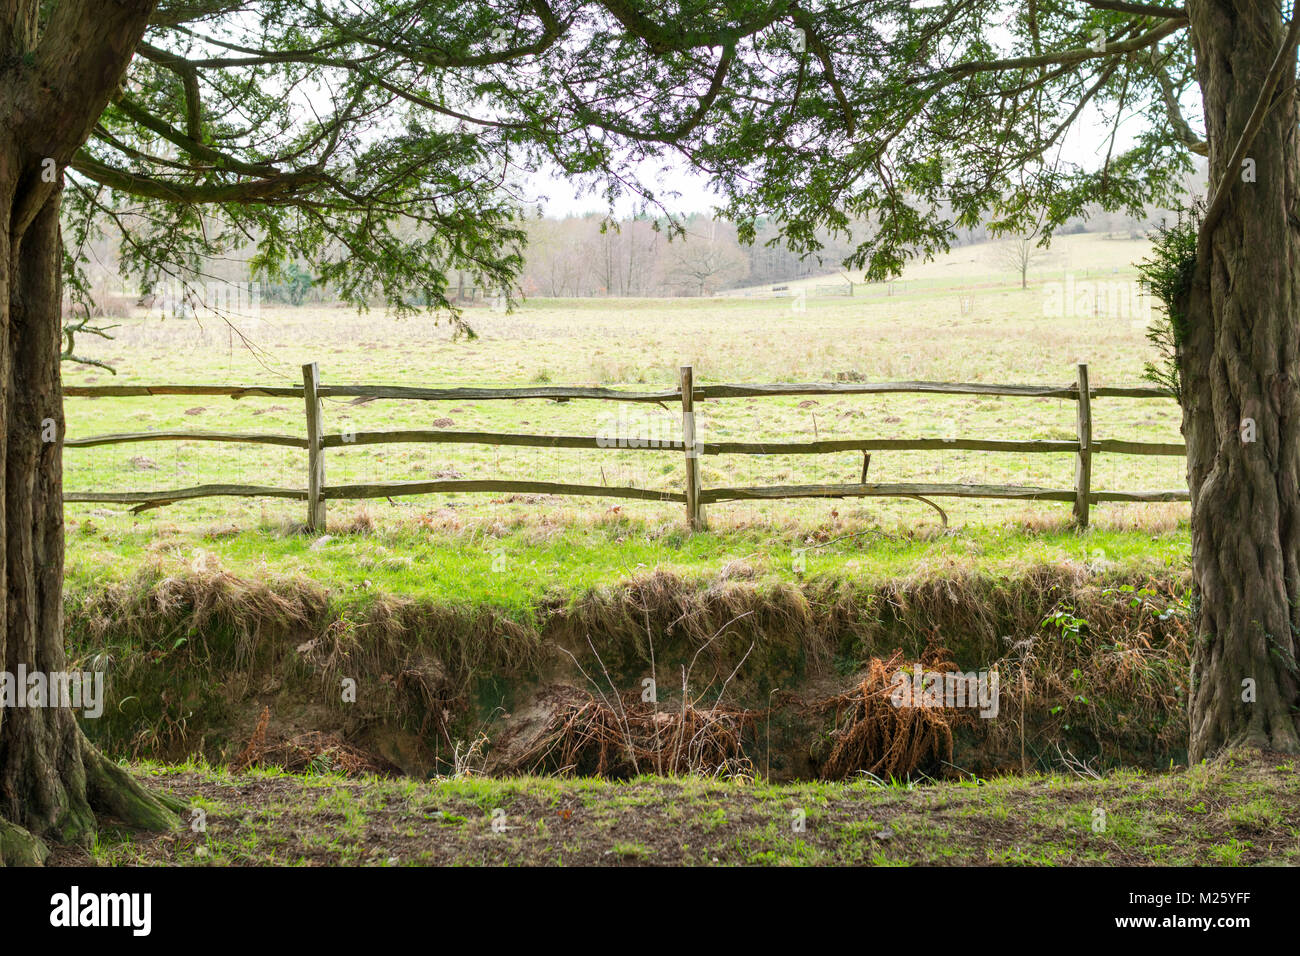 Field through fence framed by trees in Sussex, England, with a ditch before the fence - Stock Image